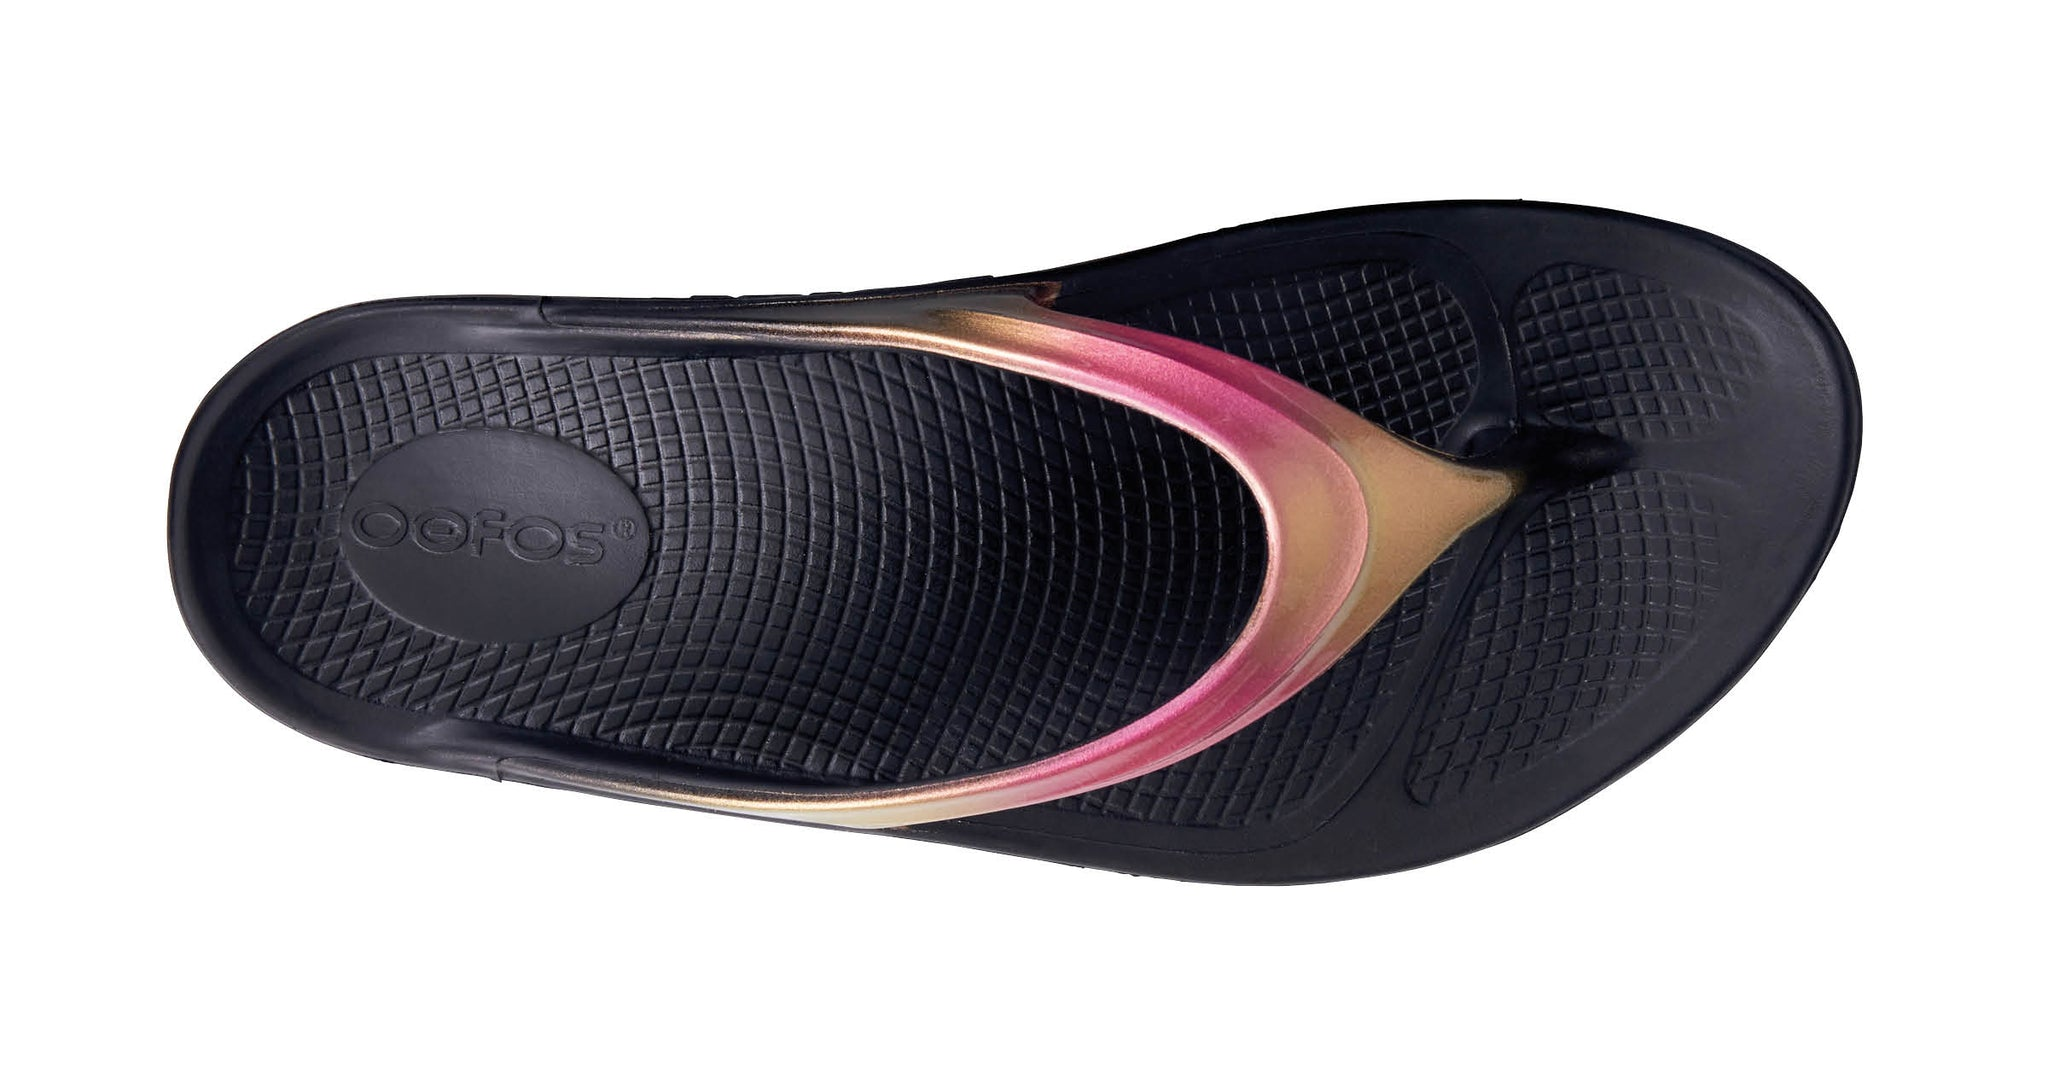 54449706bb39 OOFOS Women s OOlala Luxe Recovery Sandals